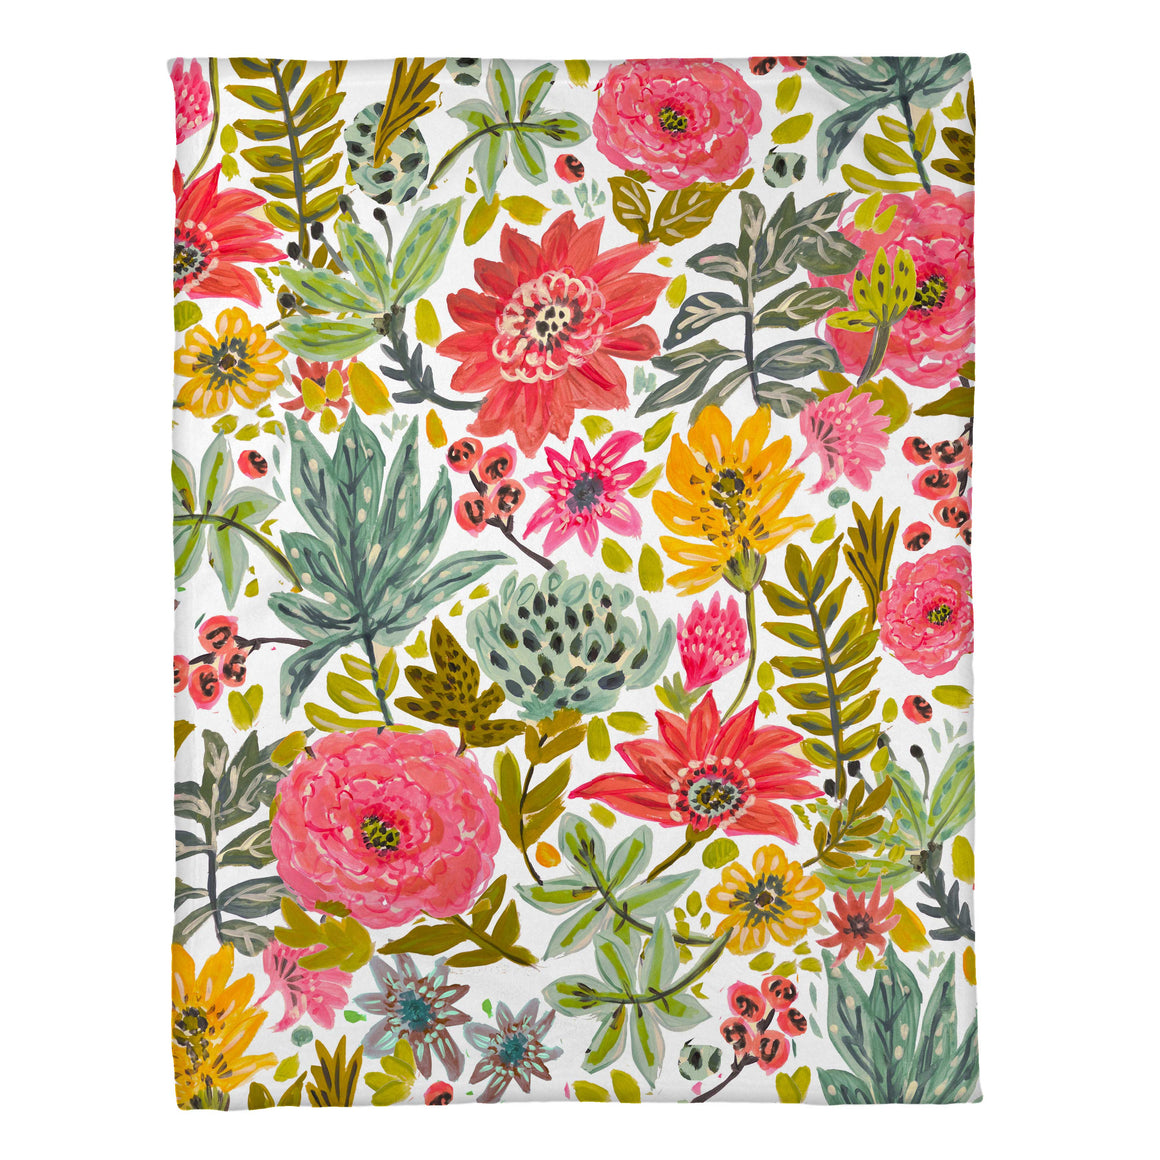 "The ""Succulent Floral Fleece Throw"" features a wide variety of vibrant colors, flowers, and succulents. The bright hues make for an optimistic and fun looking design sure to add liveliness to any living space."